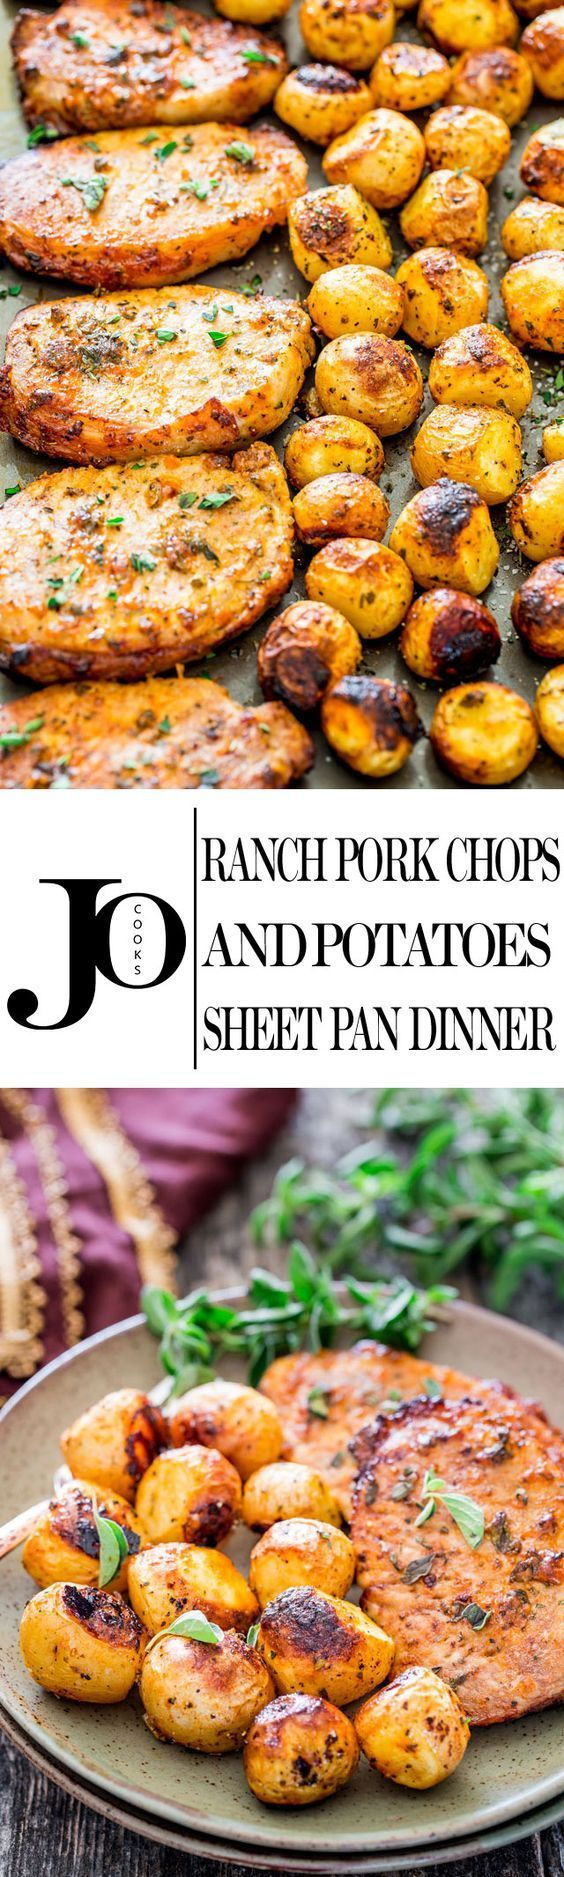 Ranch Pork Chops and Potatoes Sheet Pan Dinner Recipe via Jo Cooks - get out your sheet pan to make this delicious and easy dinner with ranch pork chops and potatoes! The BEST Sheet Pan Suppers Recipes - Easy and Quick Family Lunch and Simple Dinner Meal Ideas using only ONE PAN!